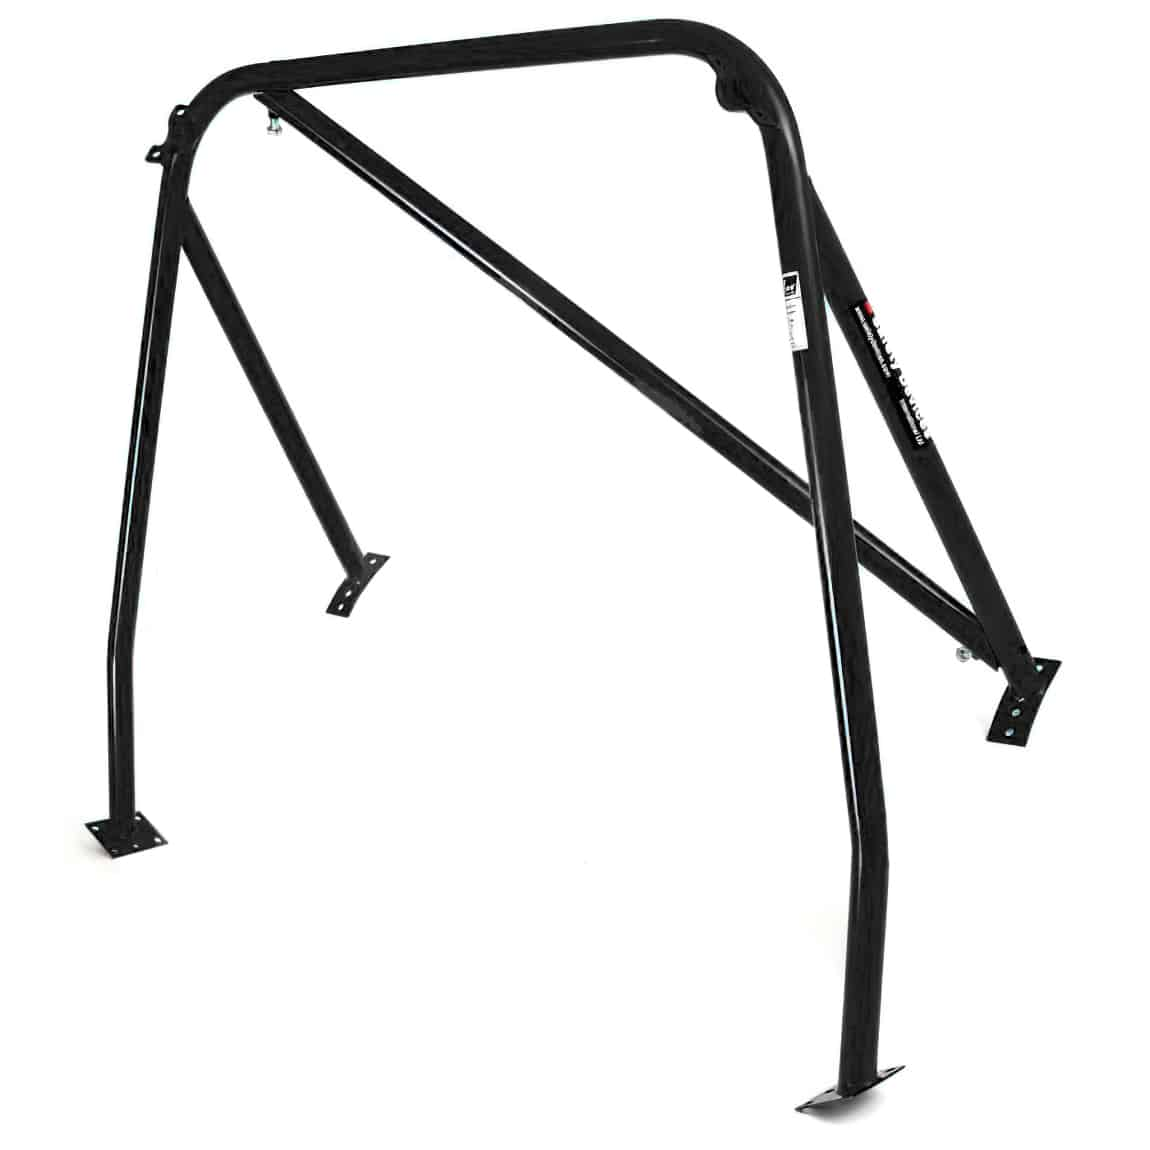 Roll Bar, Rear, with Removable Diagonal Brace (C-STR49SD)